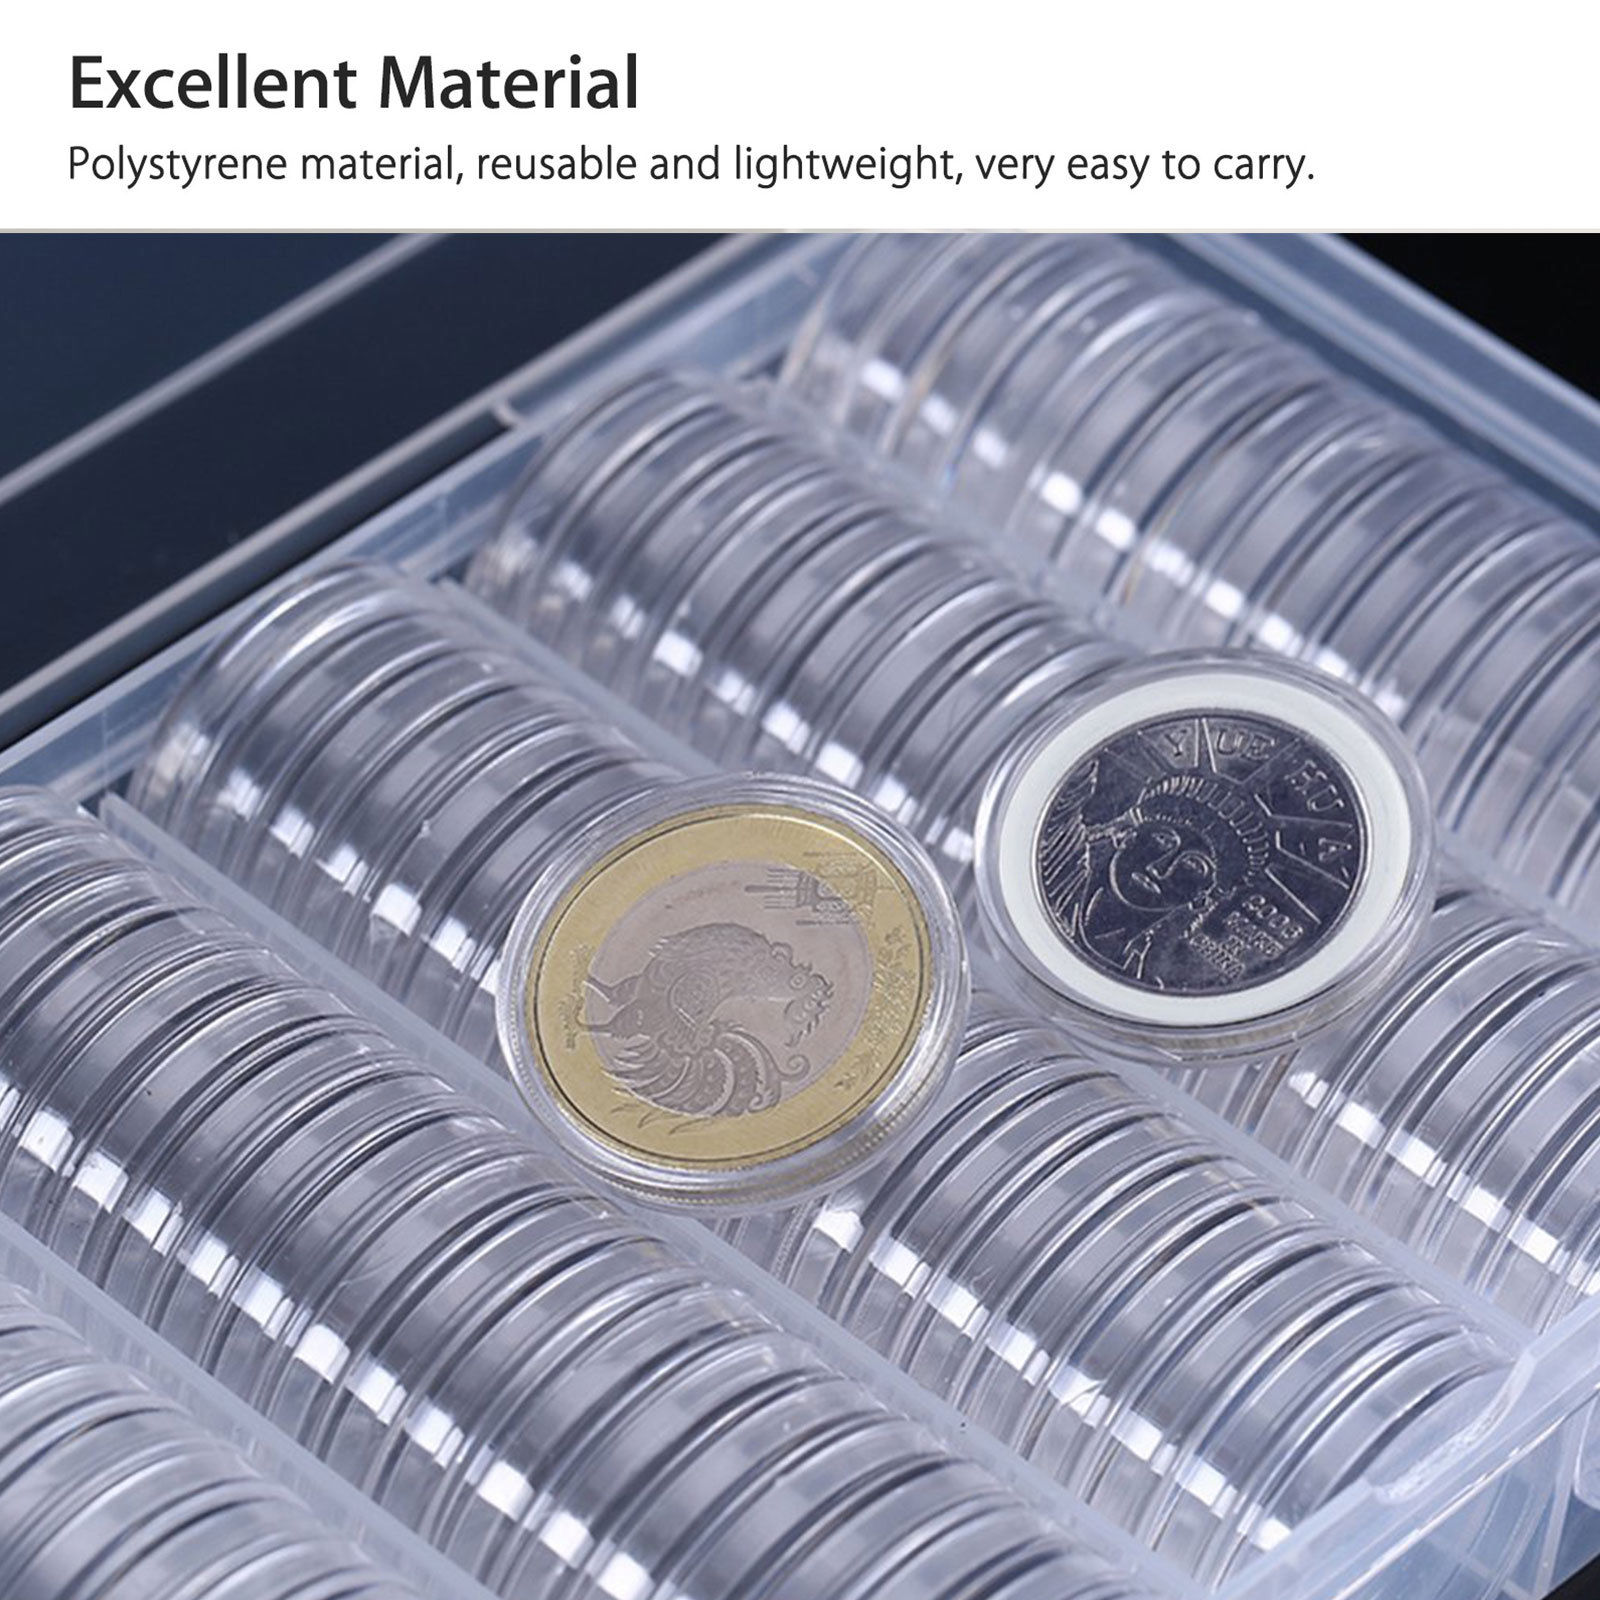 Honbay 100PCS 30mm Clear Round Plastic Coin Capsules Coin Holder Case with a Storage Box for Coin Collection Supplies